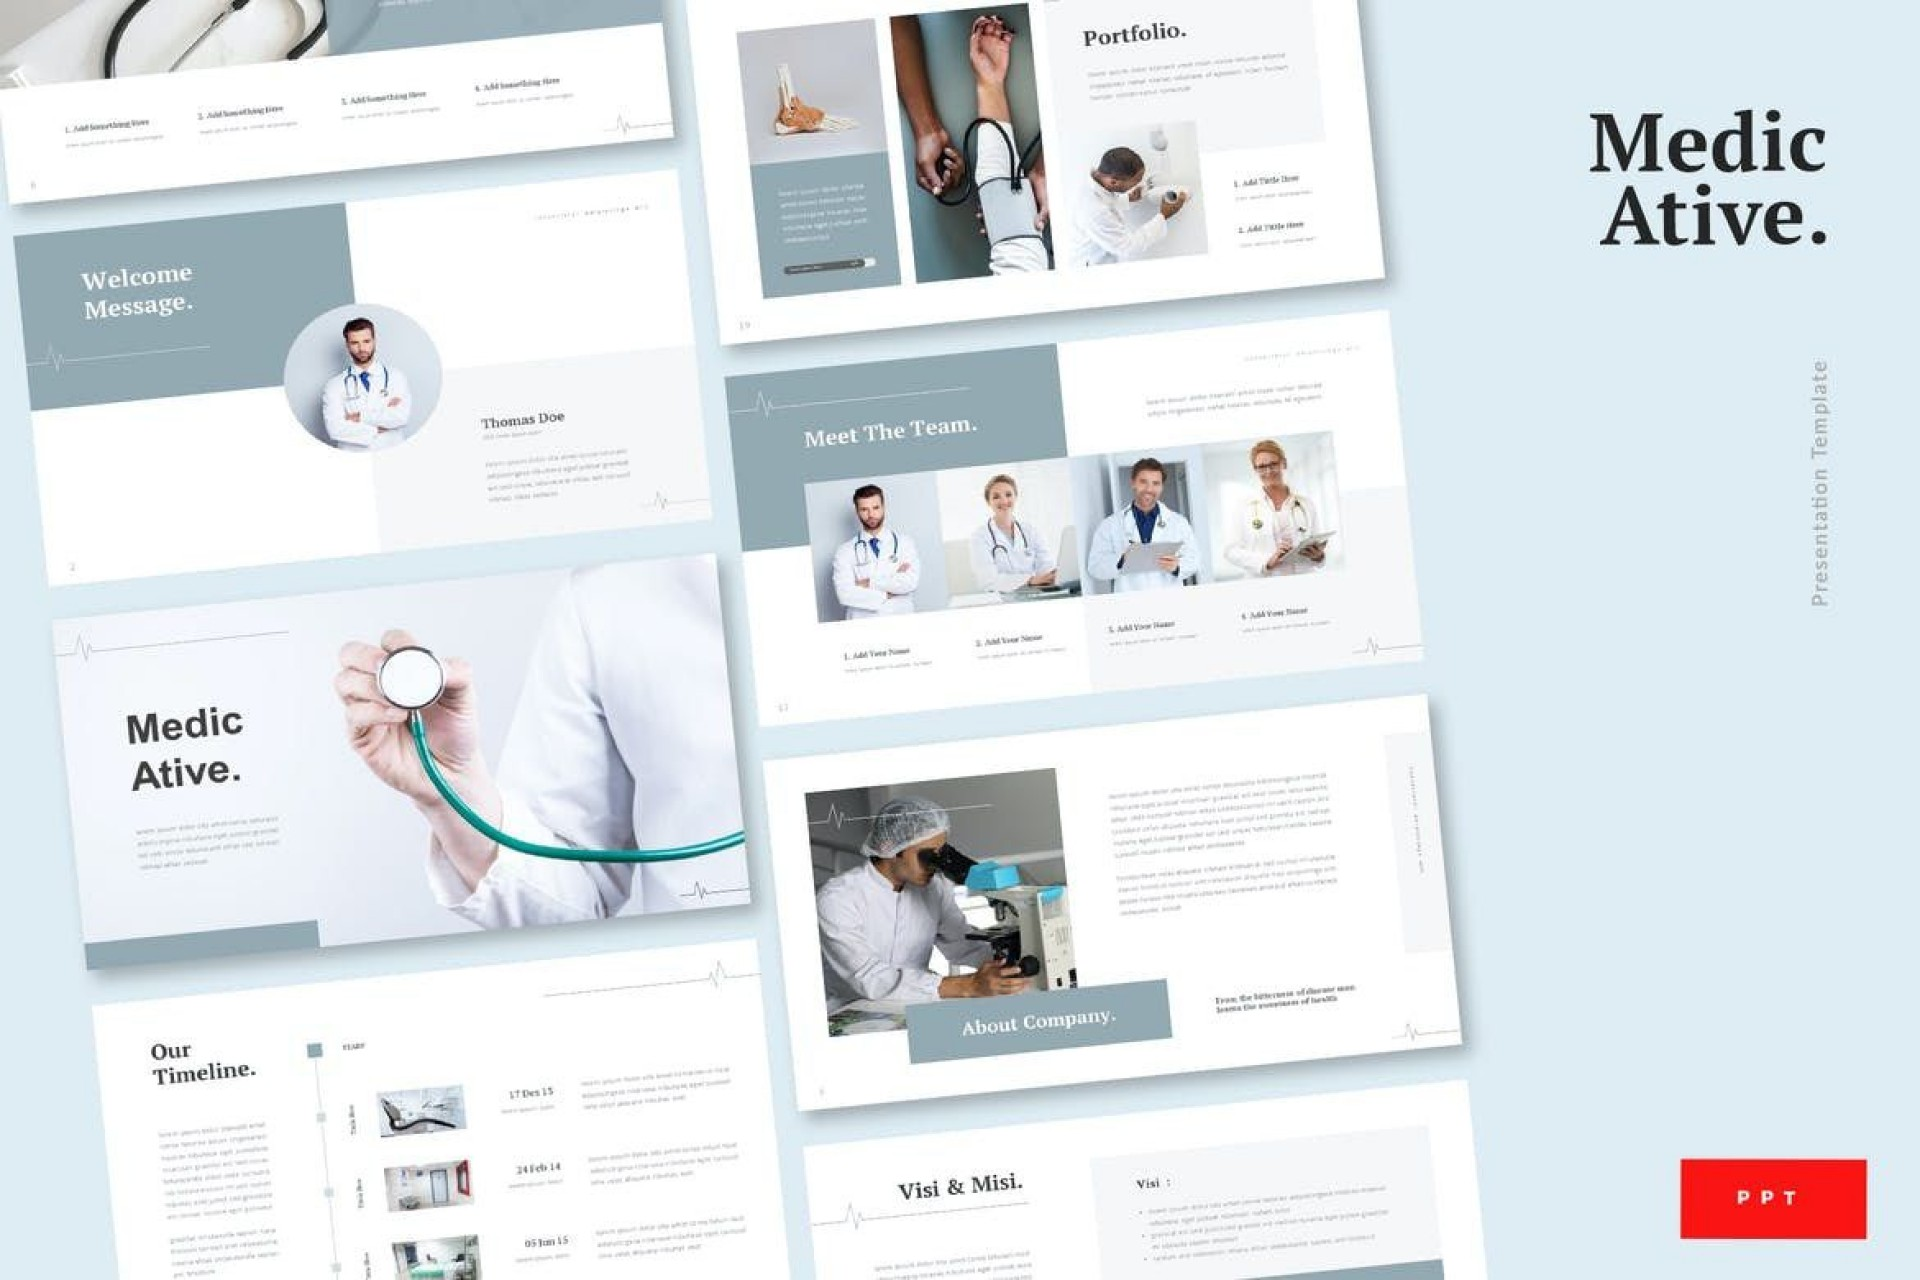 009 Top Powerpoint Presentation Template Free Download Medical Concept  Animated1920